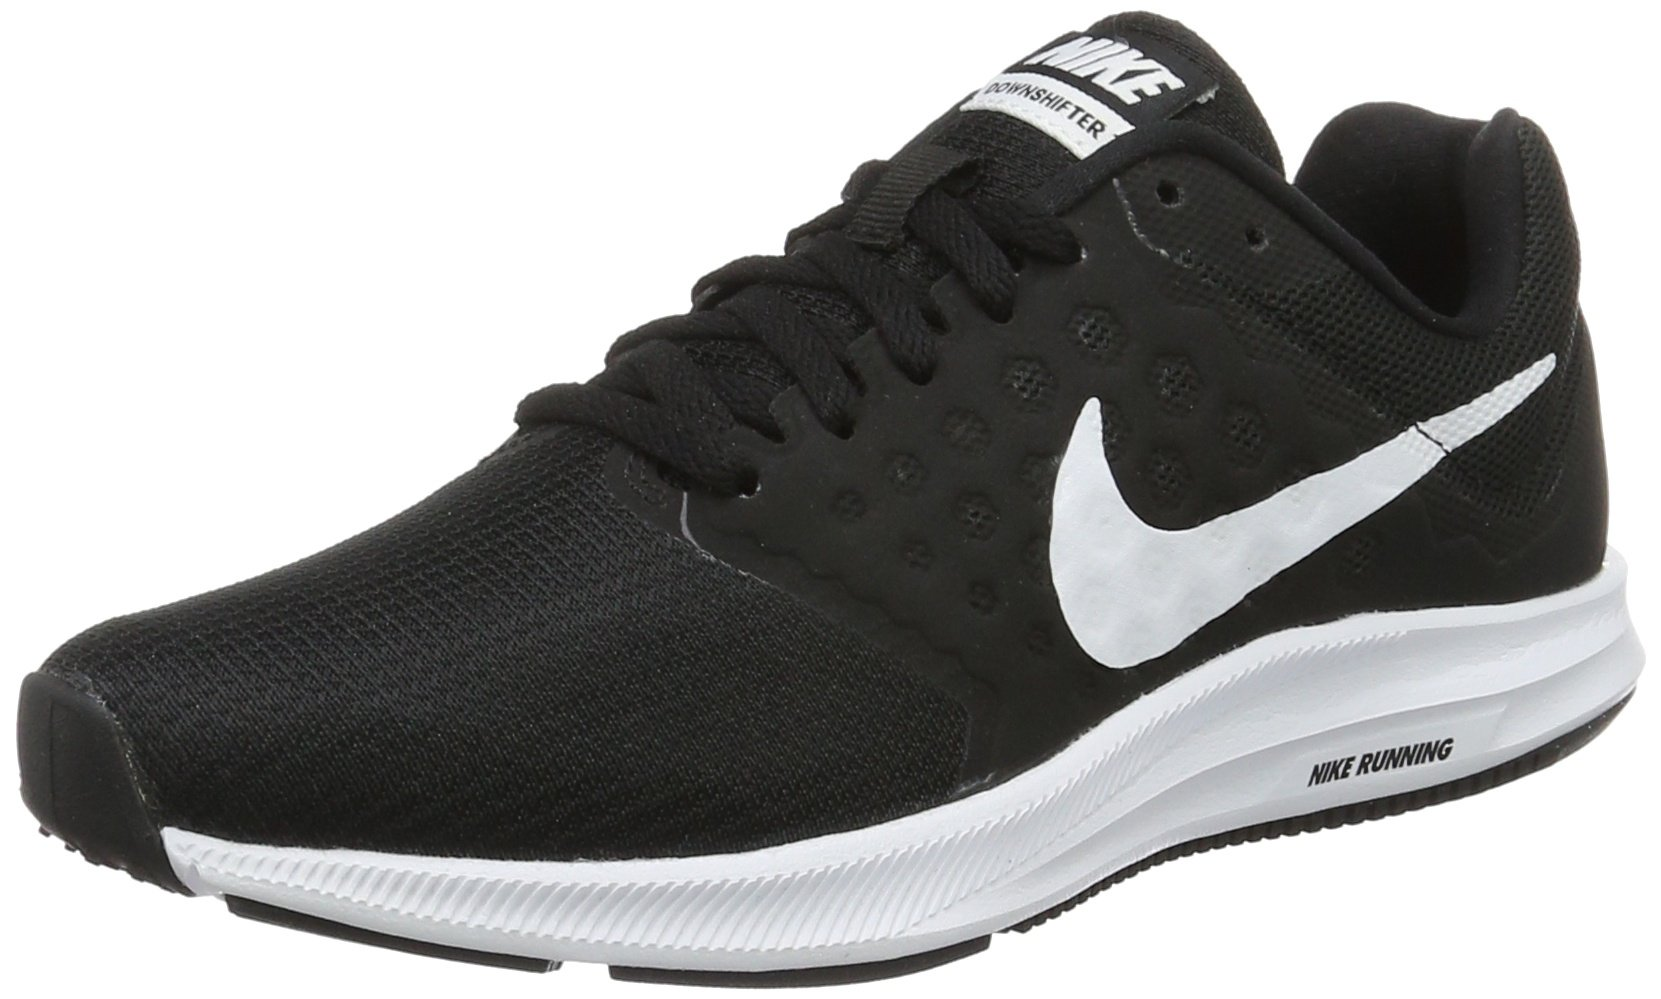 Nike Women's Downshifter 7 Running Shoe Black/White Size 8.5 M US by Nike